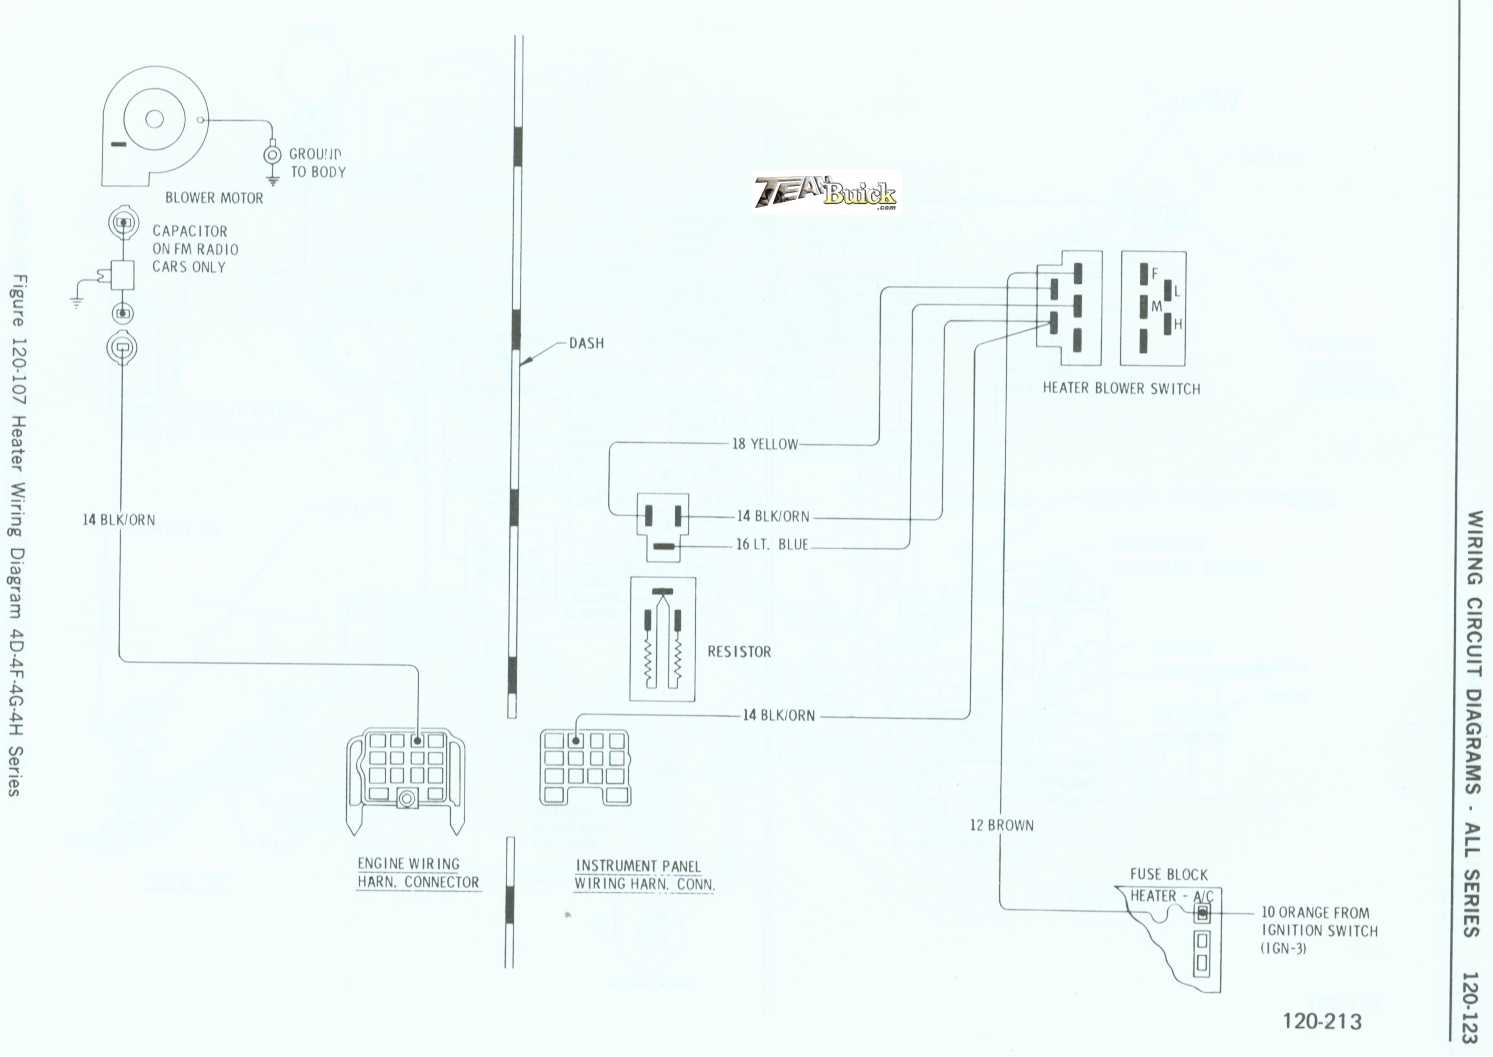 Buick Heater Wiring Diagram 4d 4f 4g 4h Series